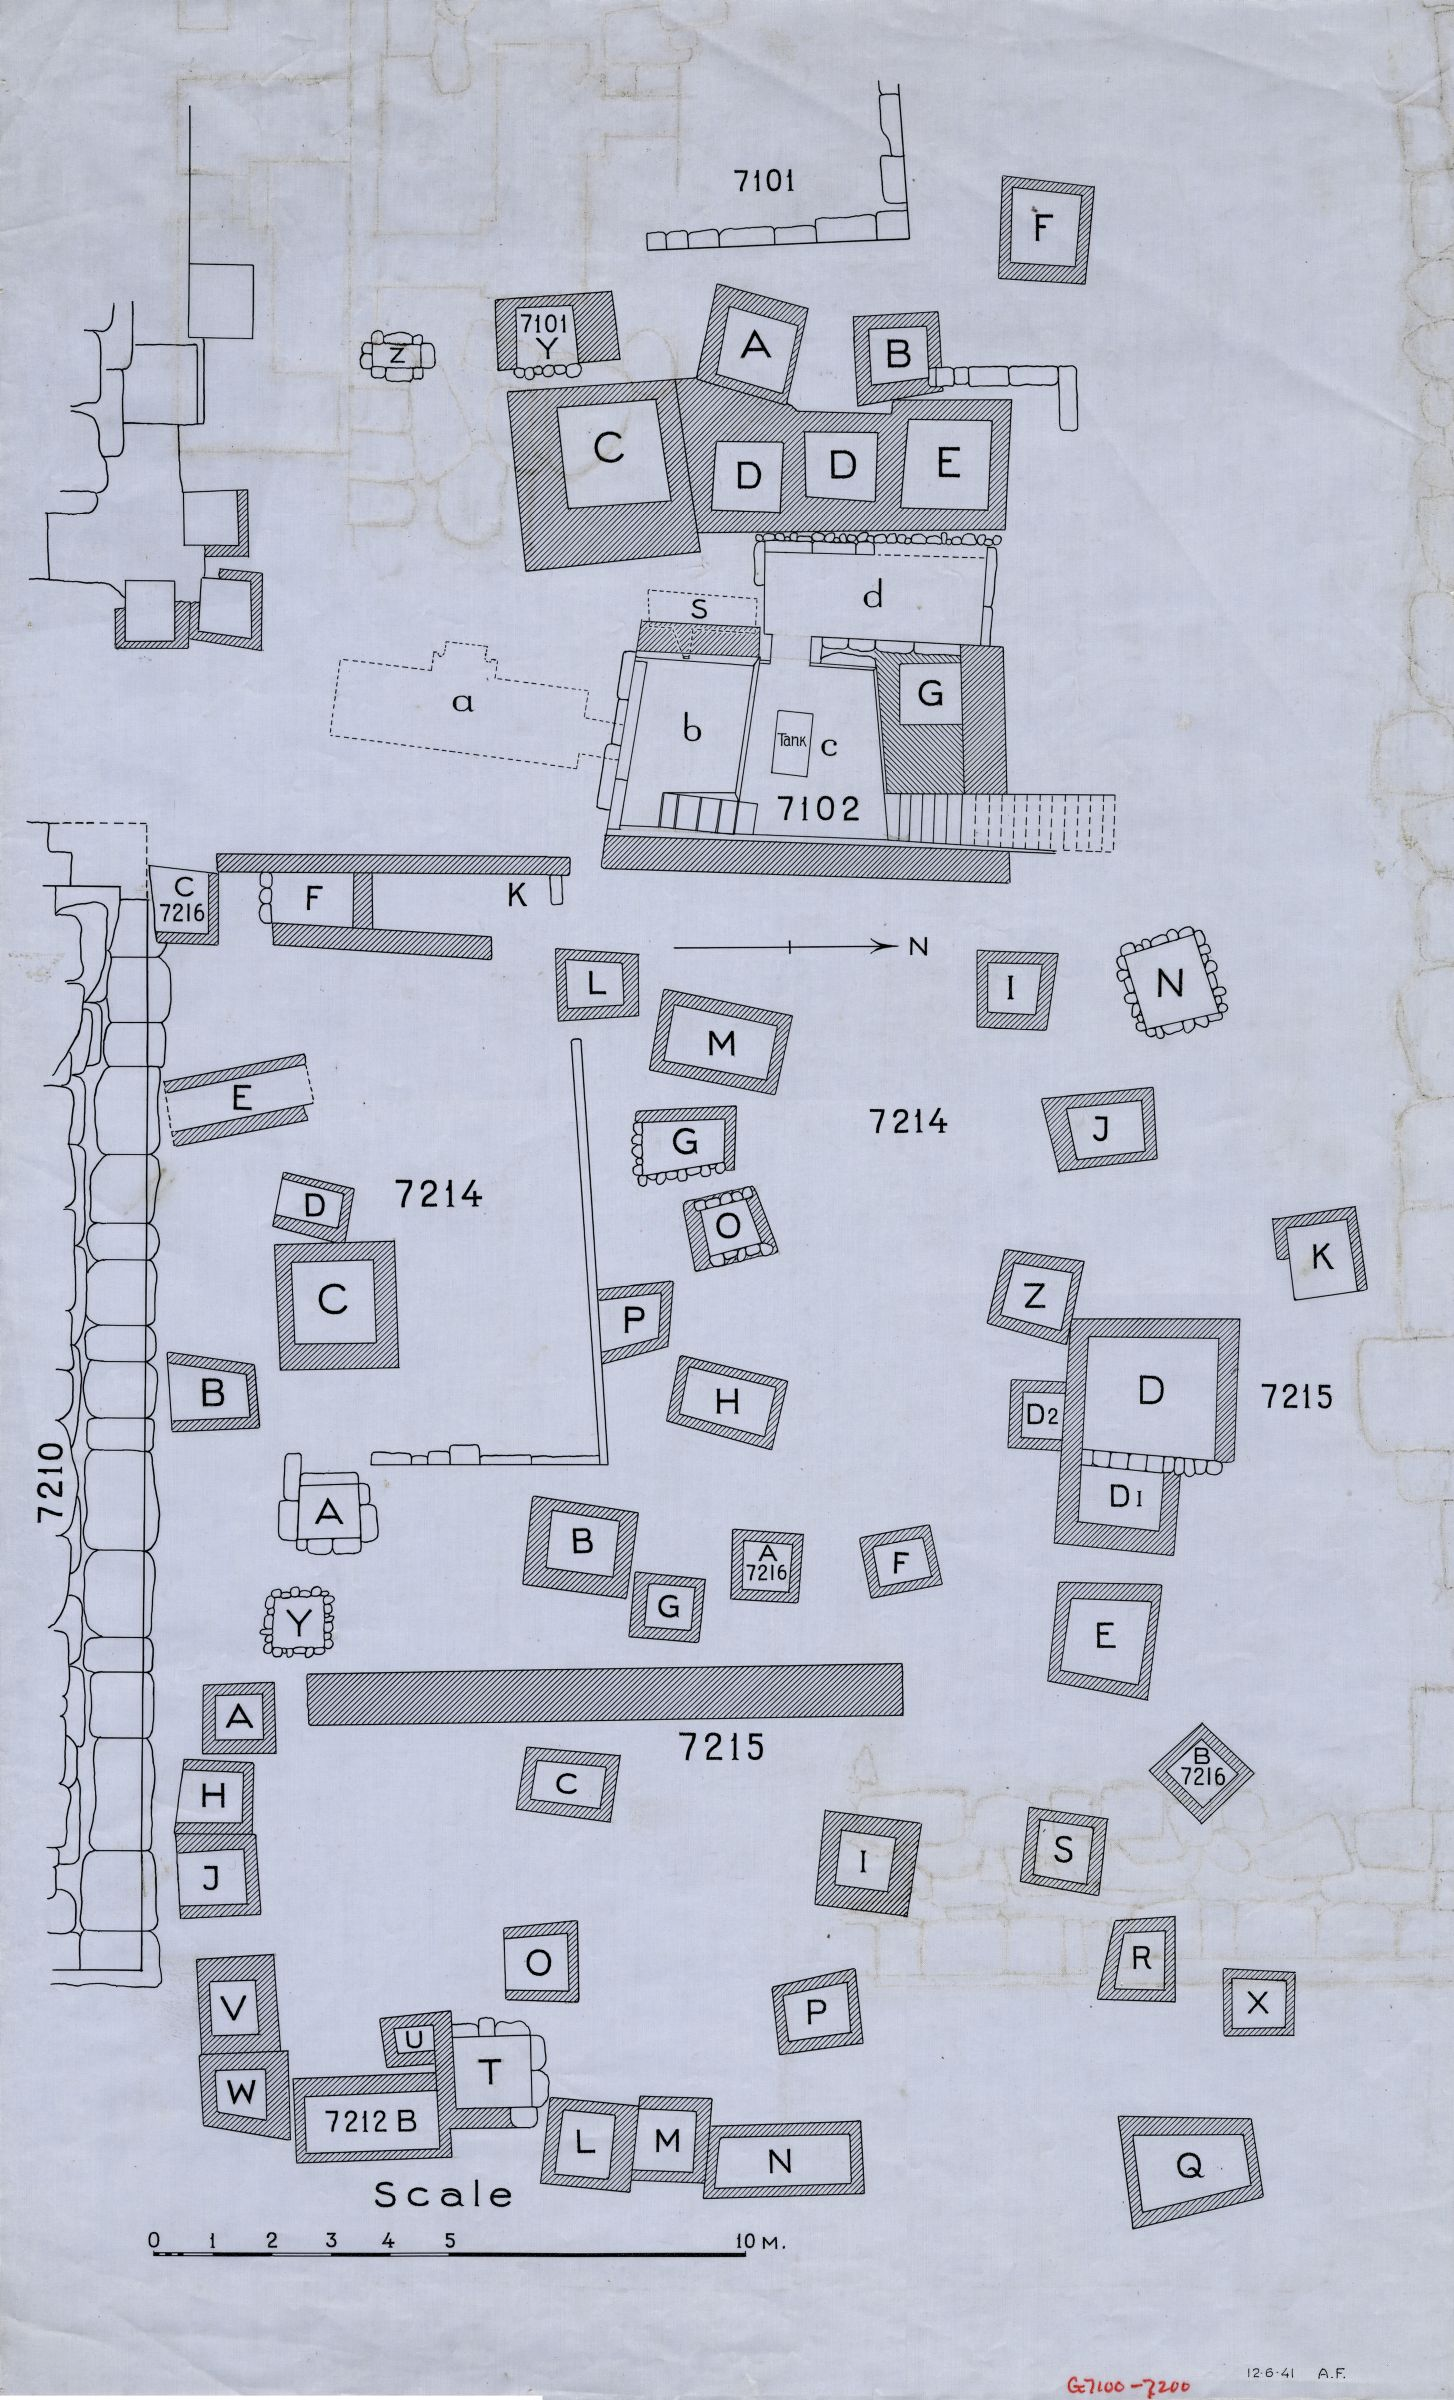 Maps and plans: Plan of Cemetery G 7000, N end